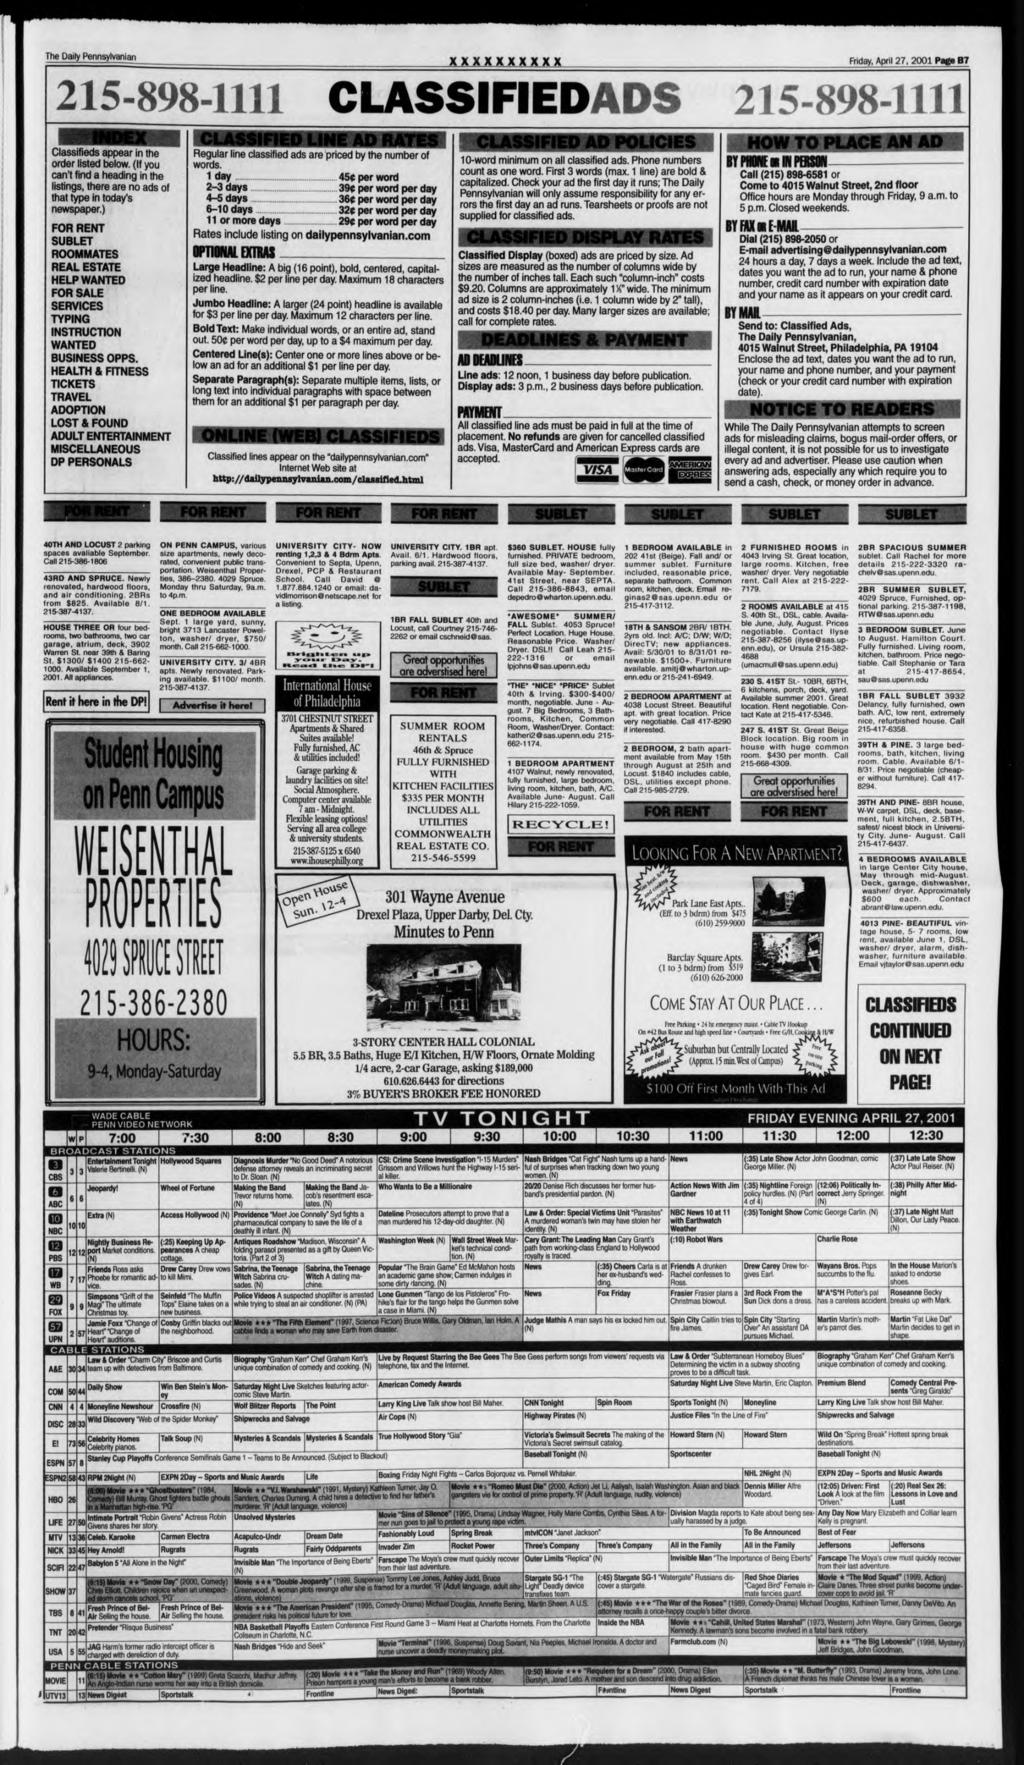 The Daily Pennsylvania!! xxxxxxxxxx day, April, 20 Page B7 215-898- CLASSIFIEDADS 215-898- Classifieds appear in the order listed below.